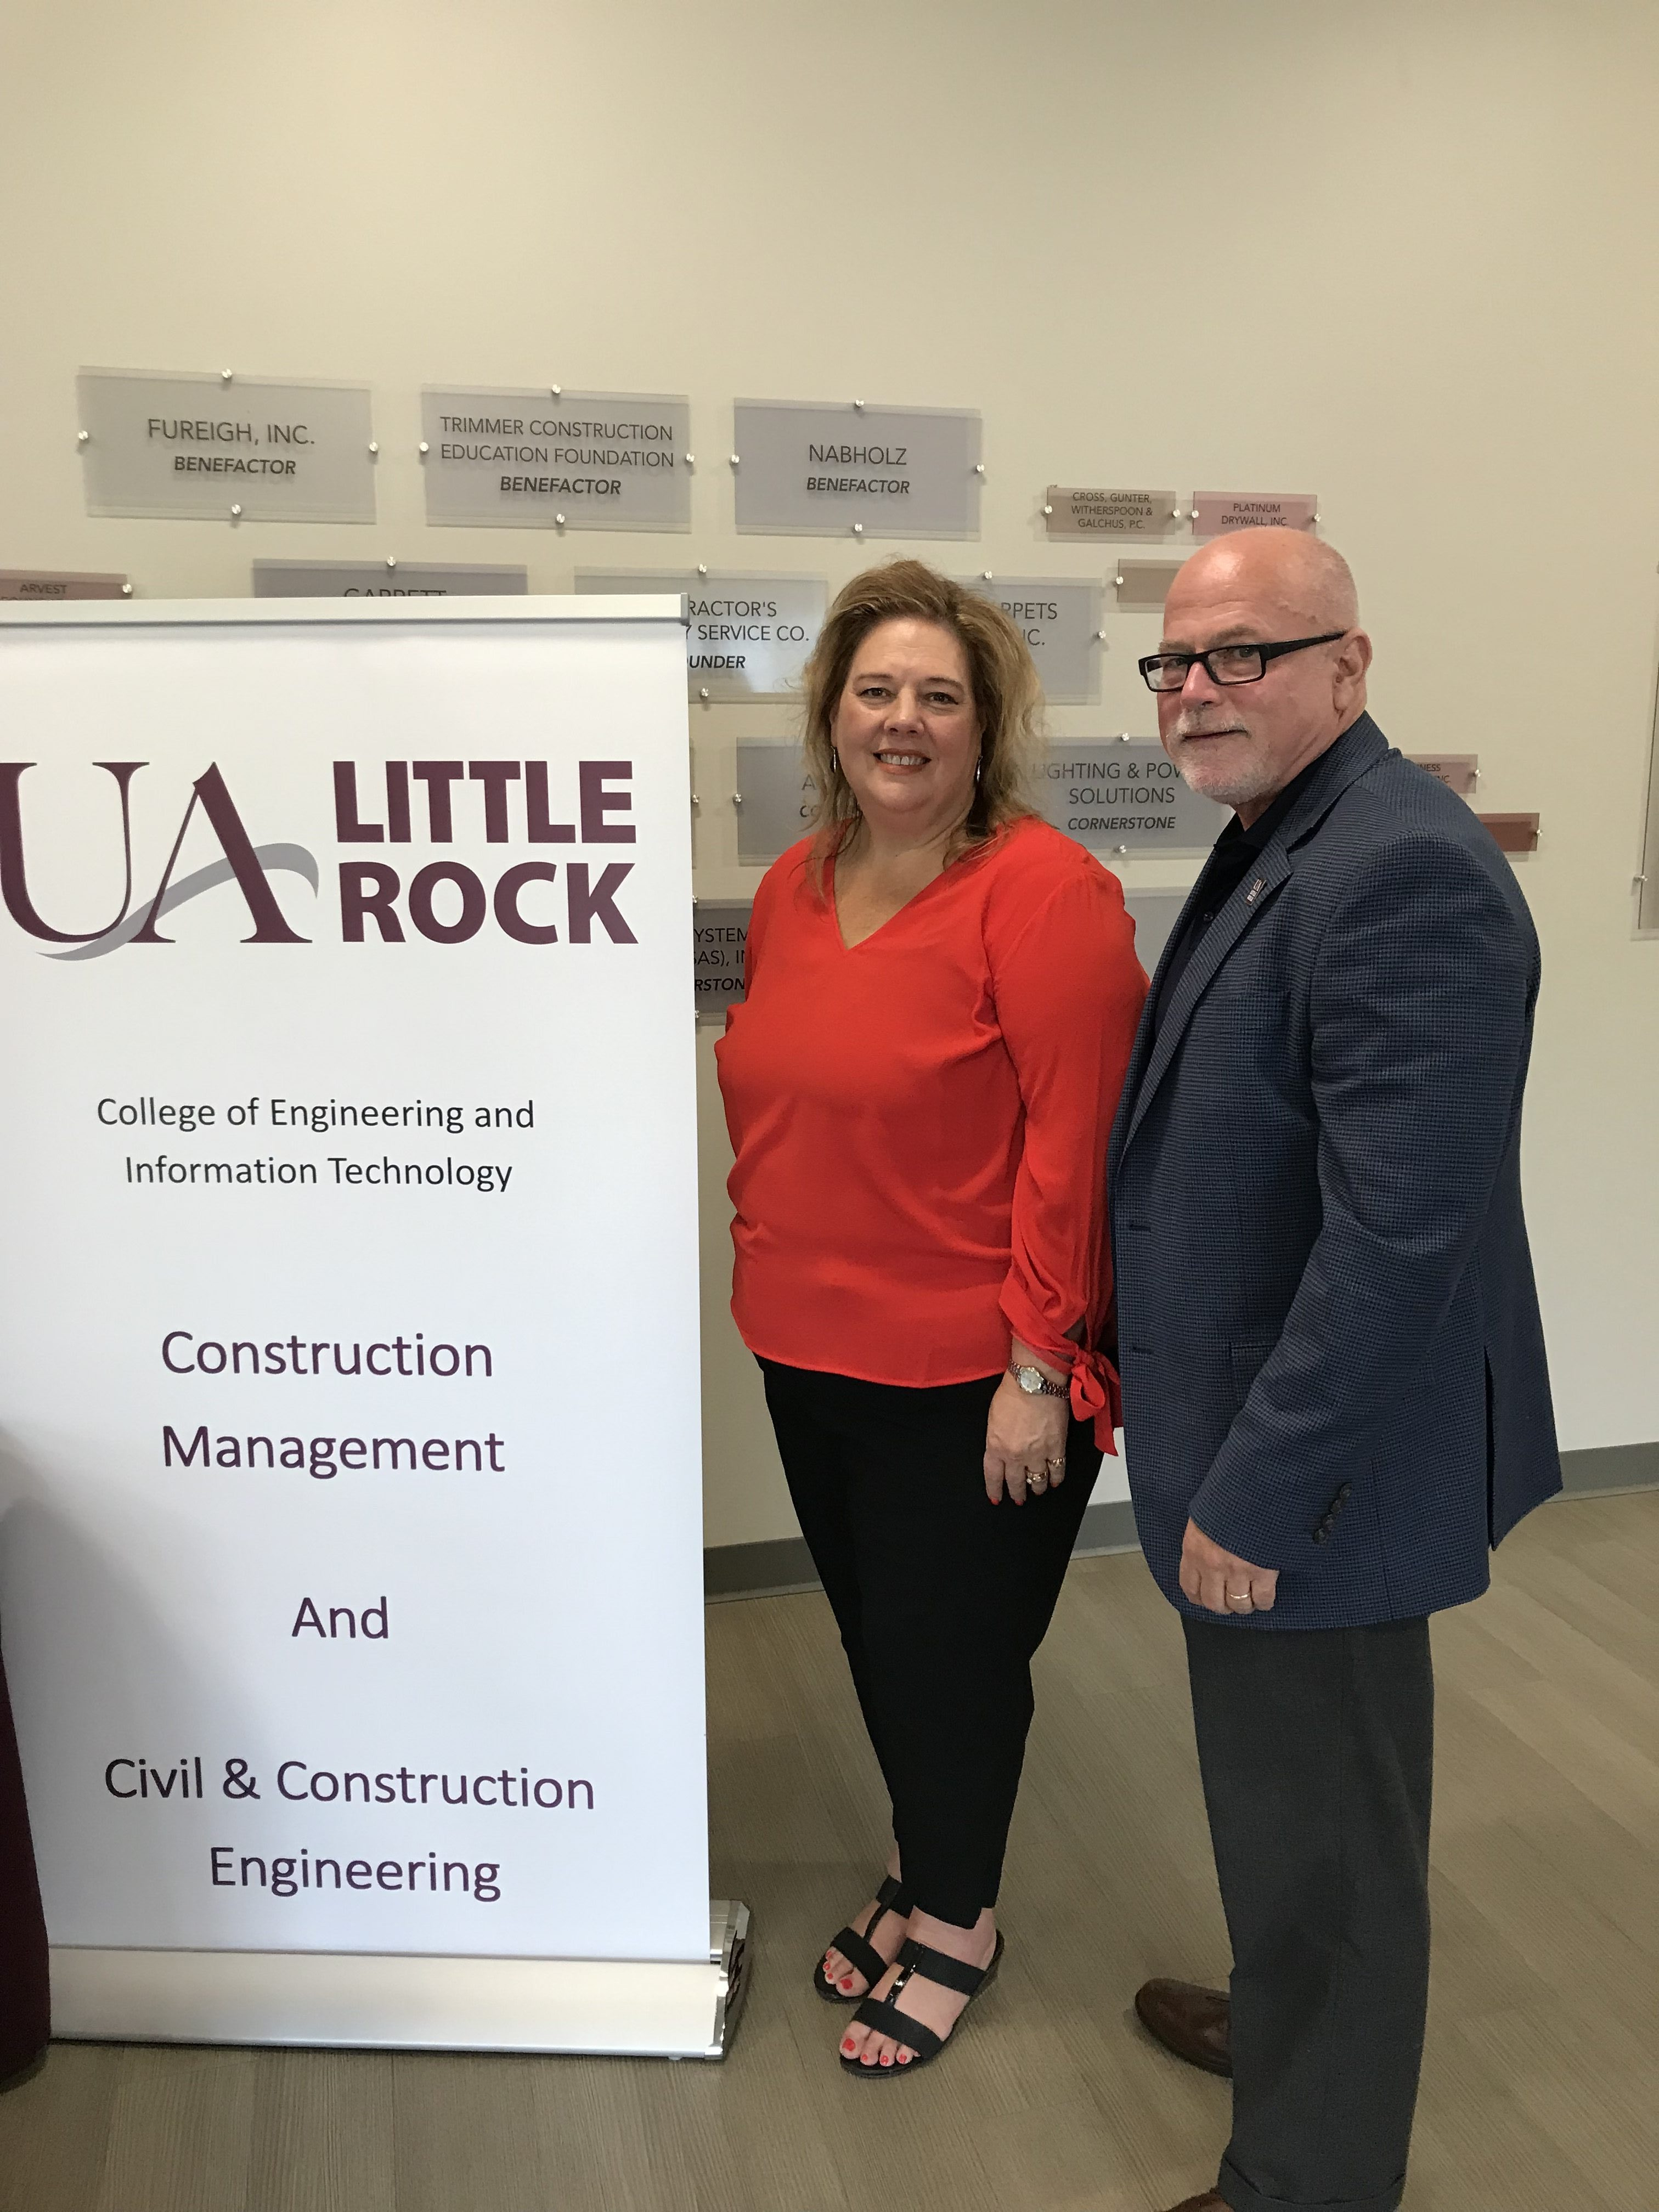 Dr. Cathy Riggins, left, and Dr. Hank Bray, right, discuss a new Associate of Construction Science Degree Partnership between UA Little Rock and Vilonia Pathways Academy Conversion Charter.